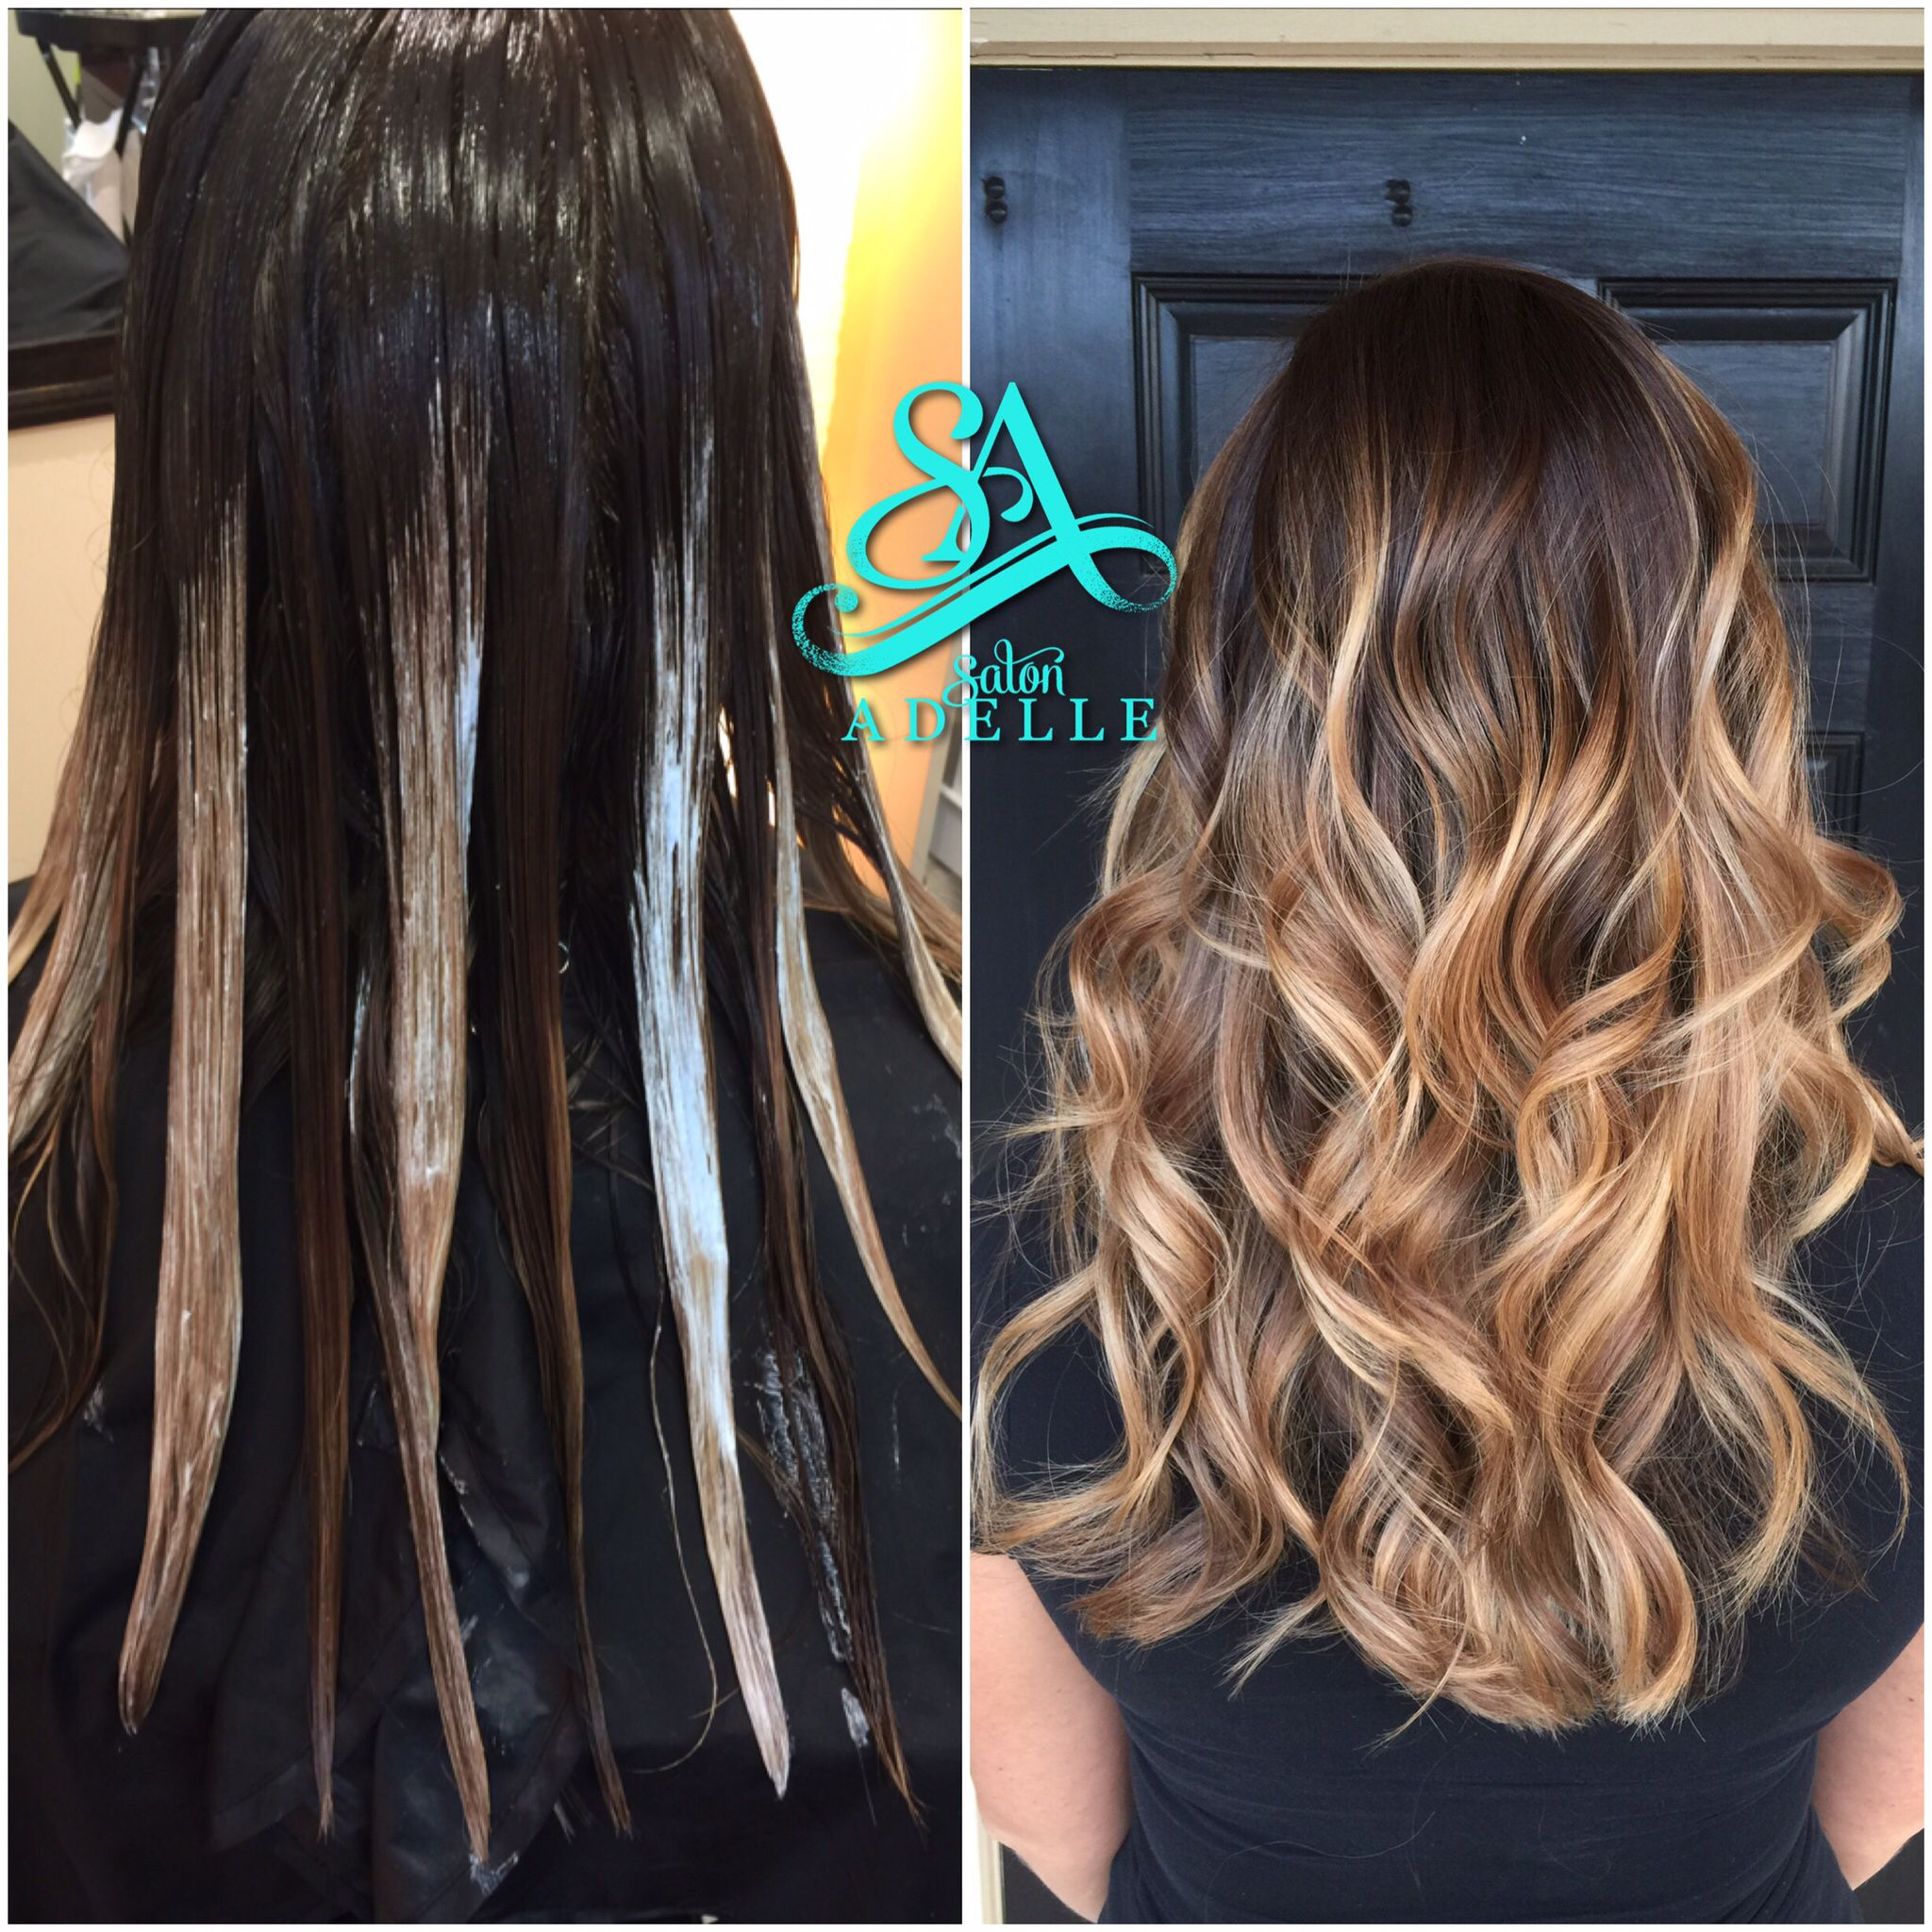 Hair Painting Blonde With Stretched Root For Fall Hair Greenville